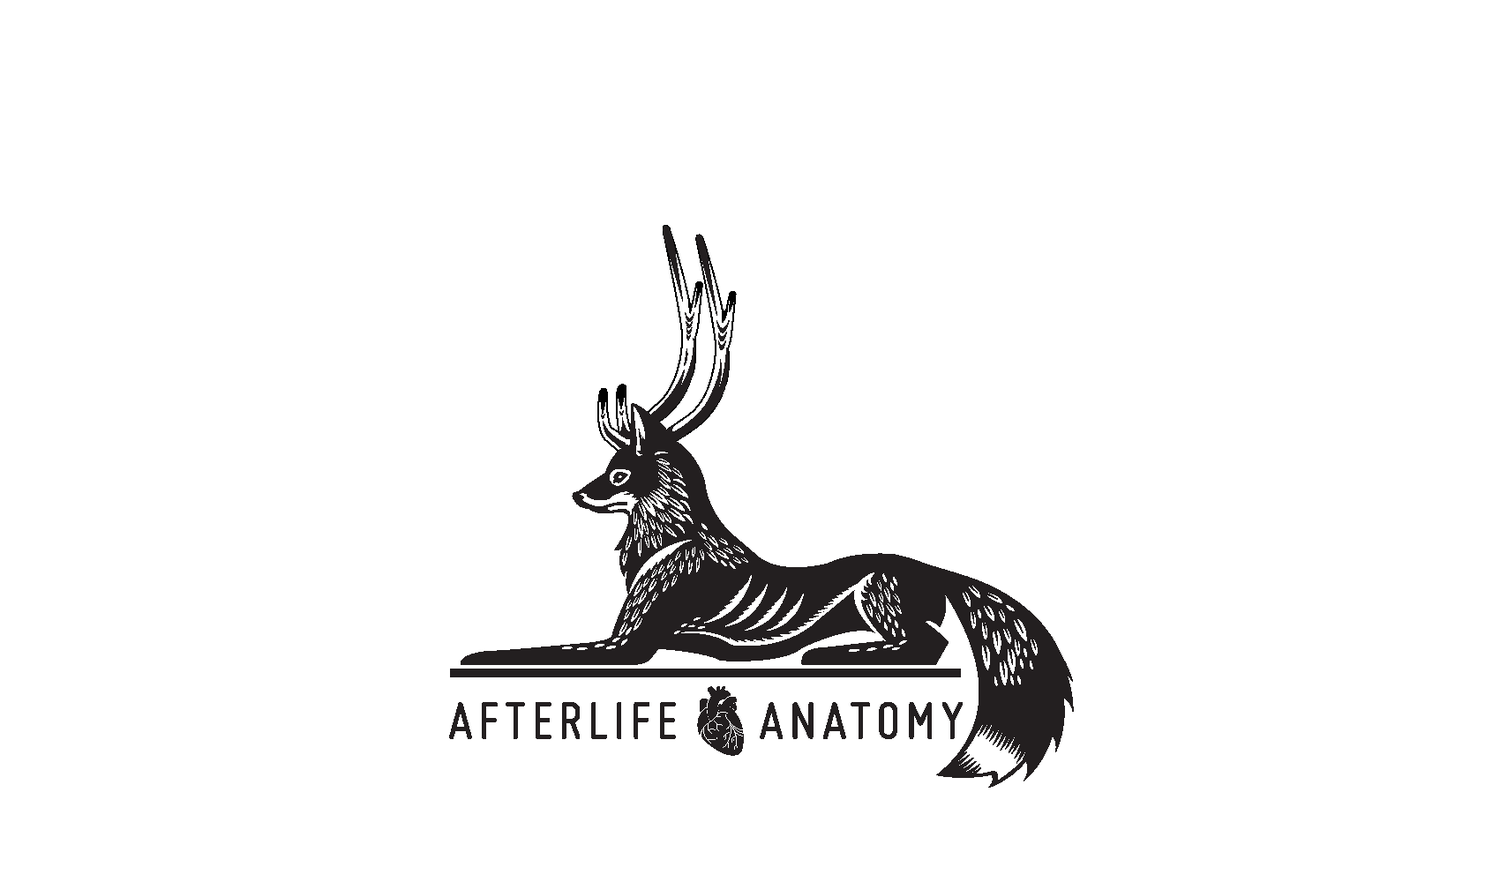 afterlife anatomy